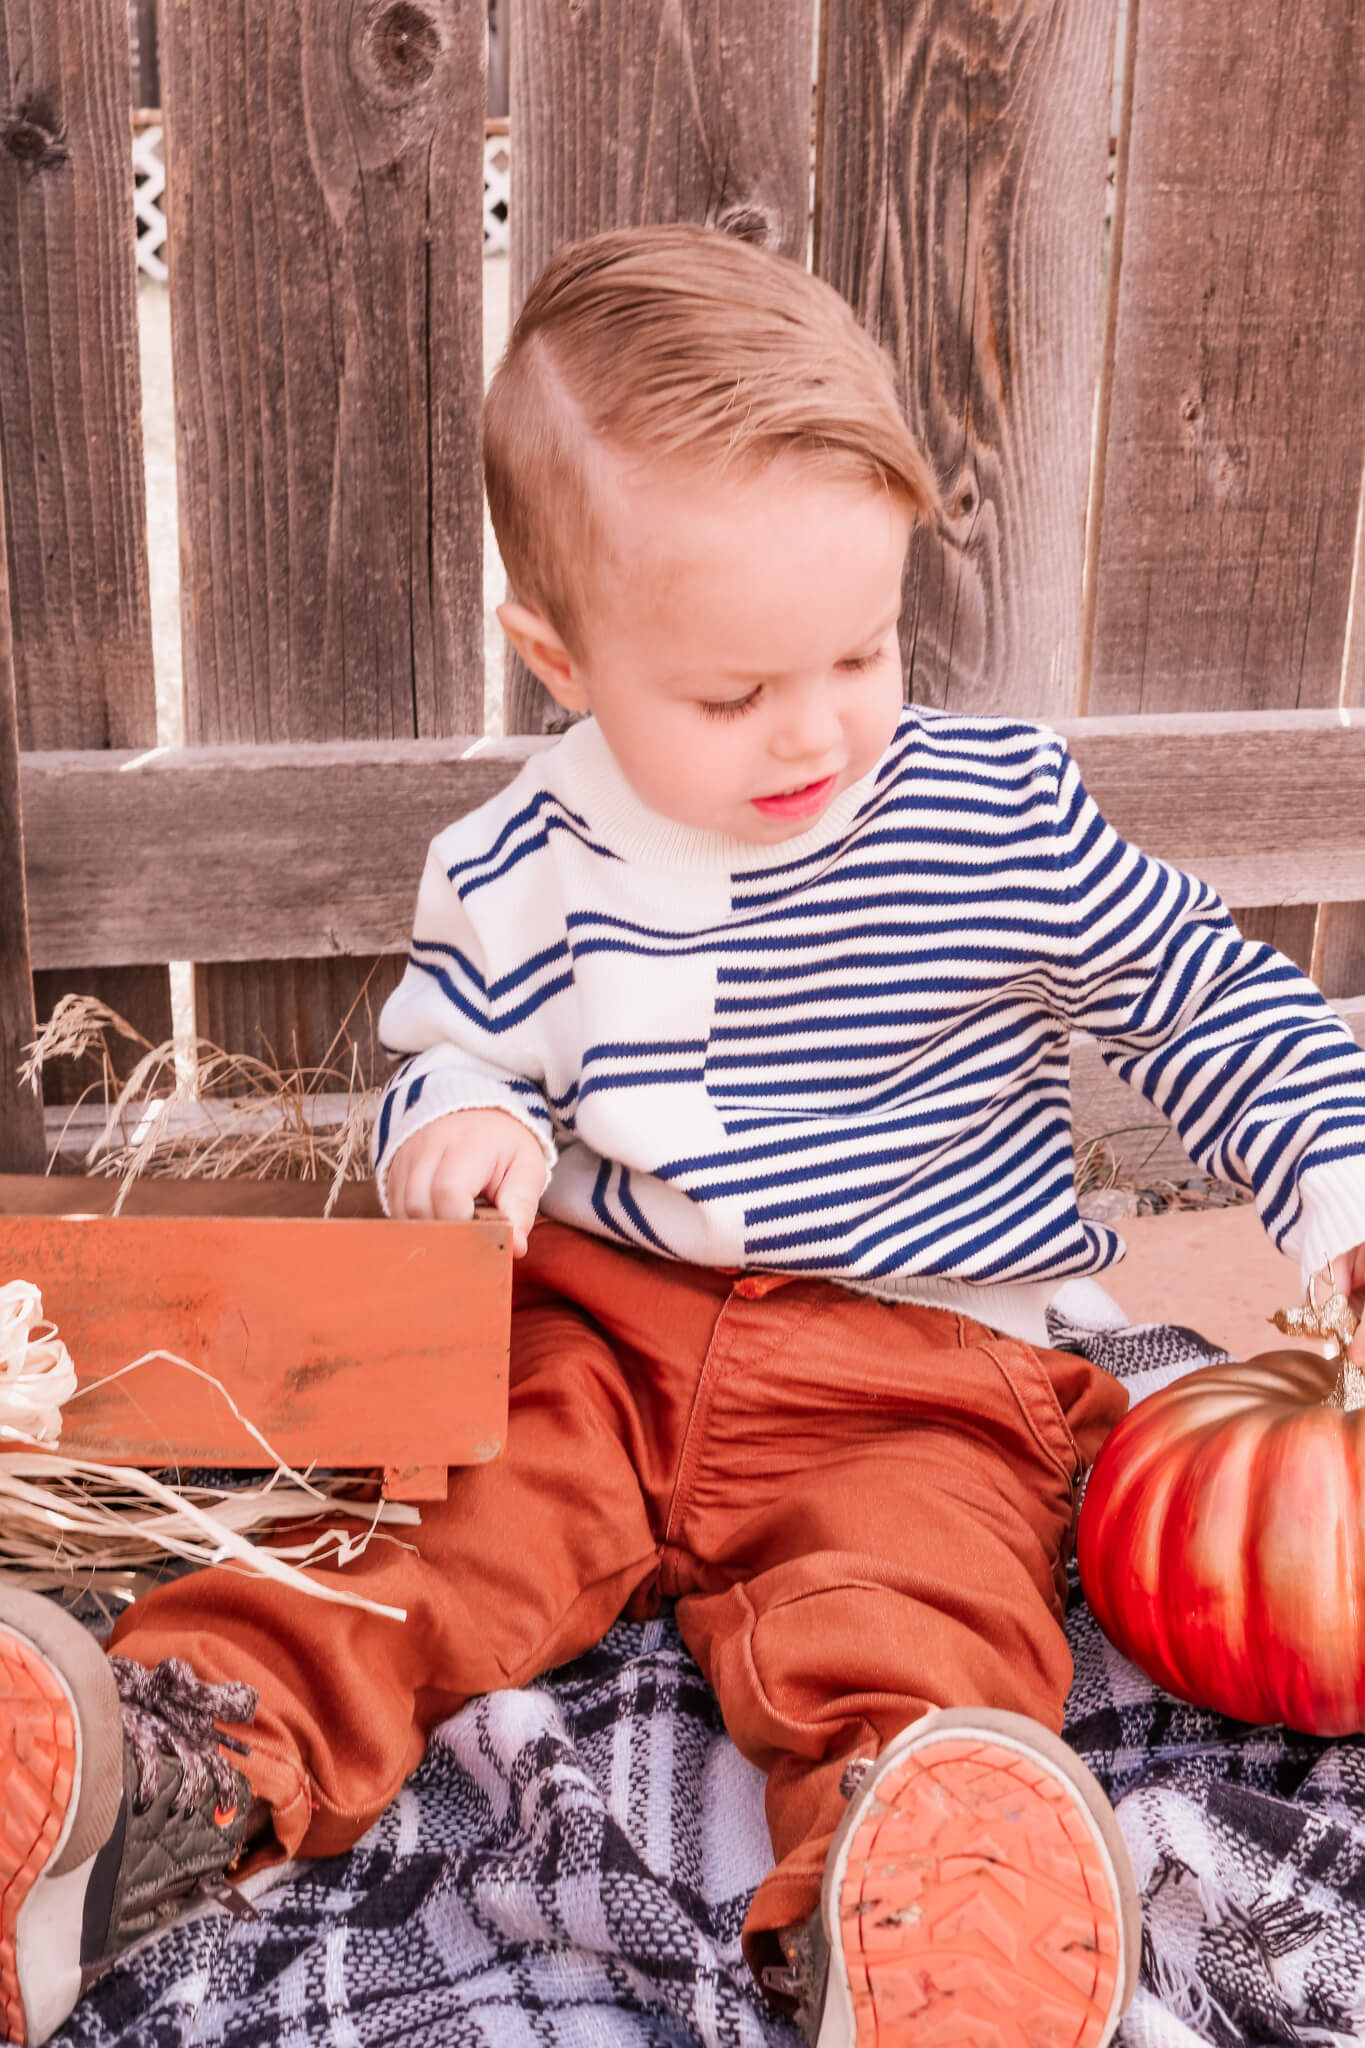 Fall Photoshoot Ideas for Toddlers